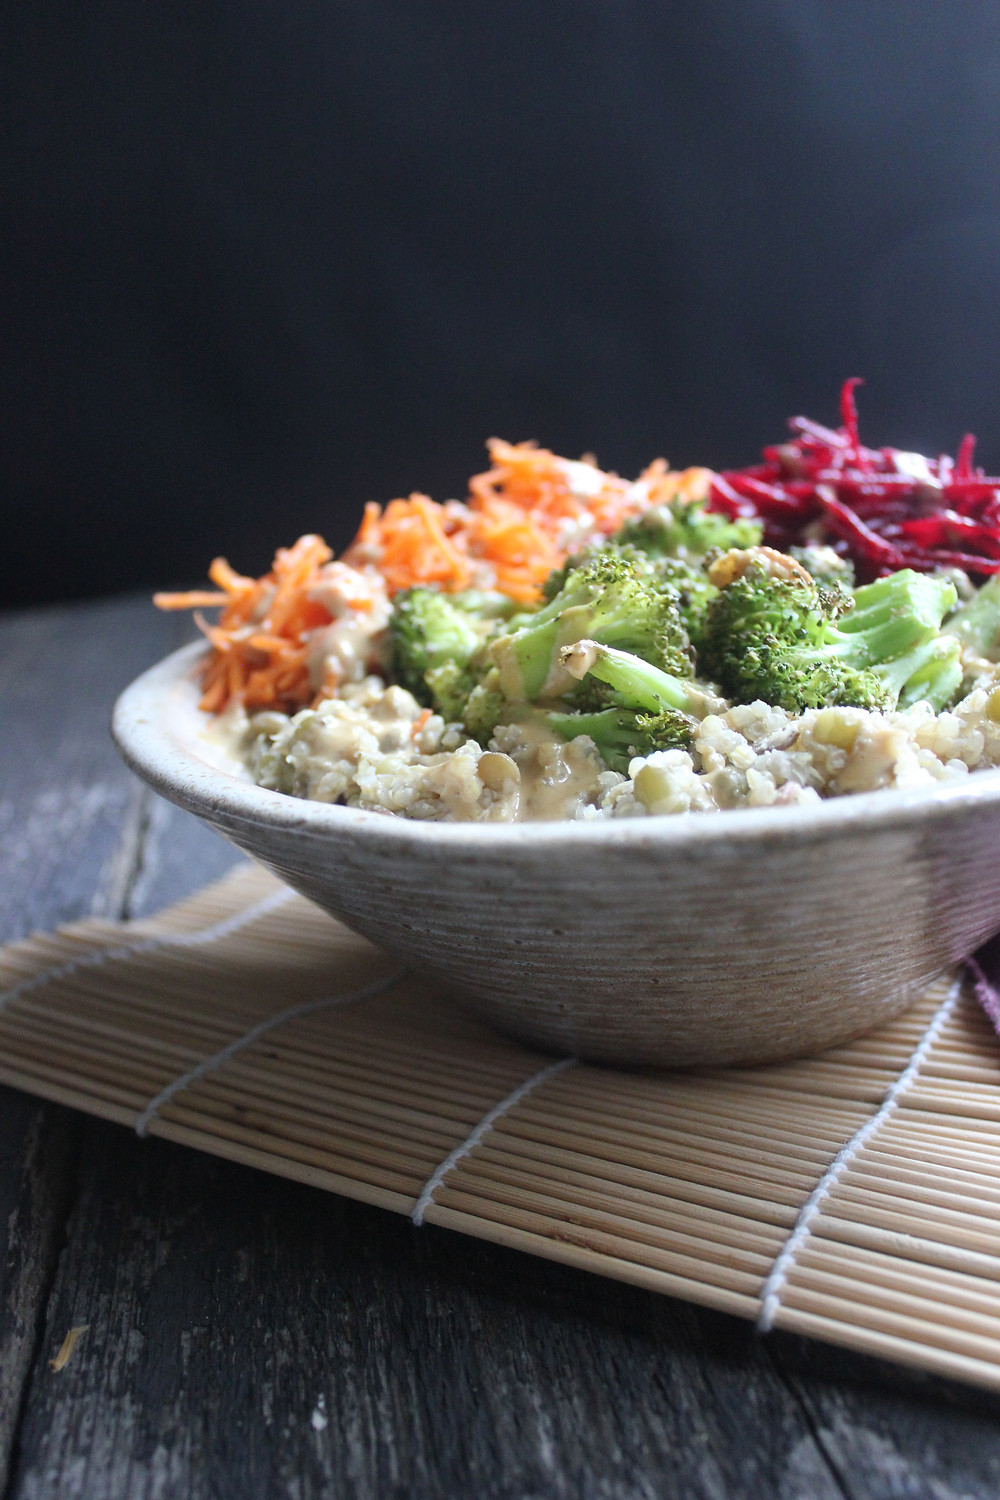 A simple, hearty and comforting nourish bowl made with quinoa, mung beans, lentils and topped with shredded beets, carrots, roasted broccoli, and homemade miso gravy.